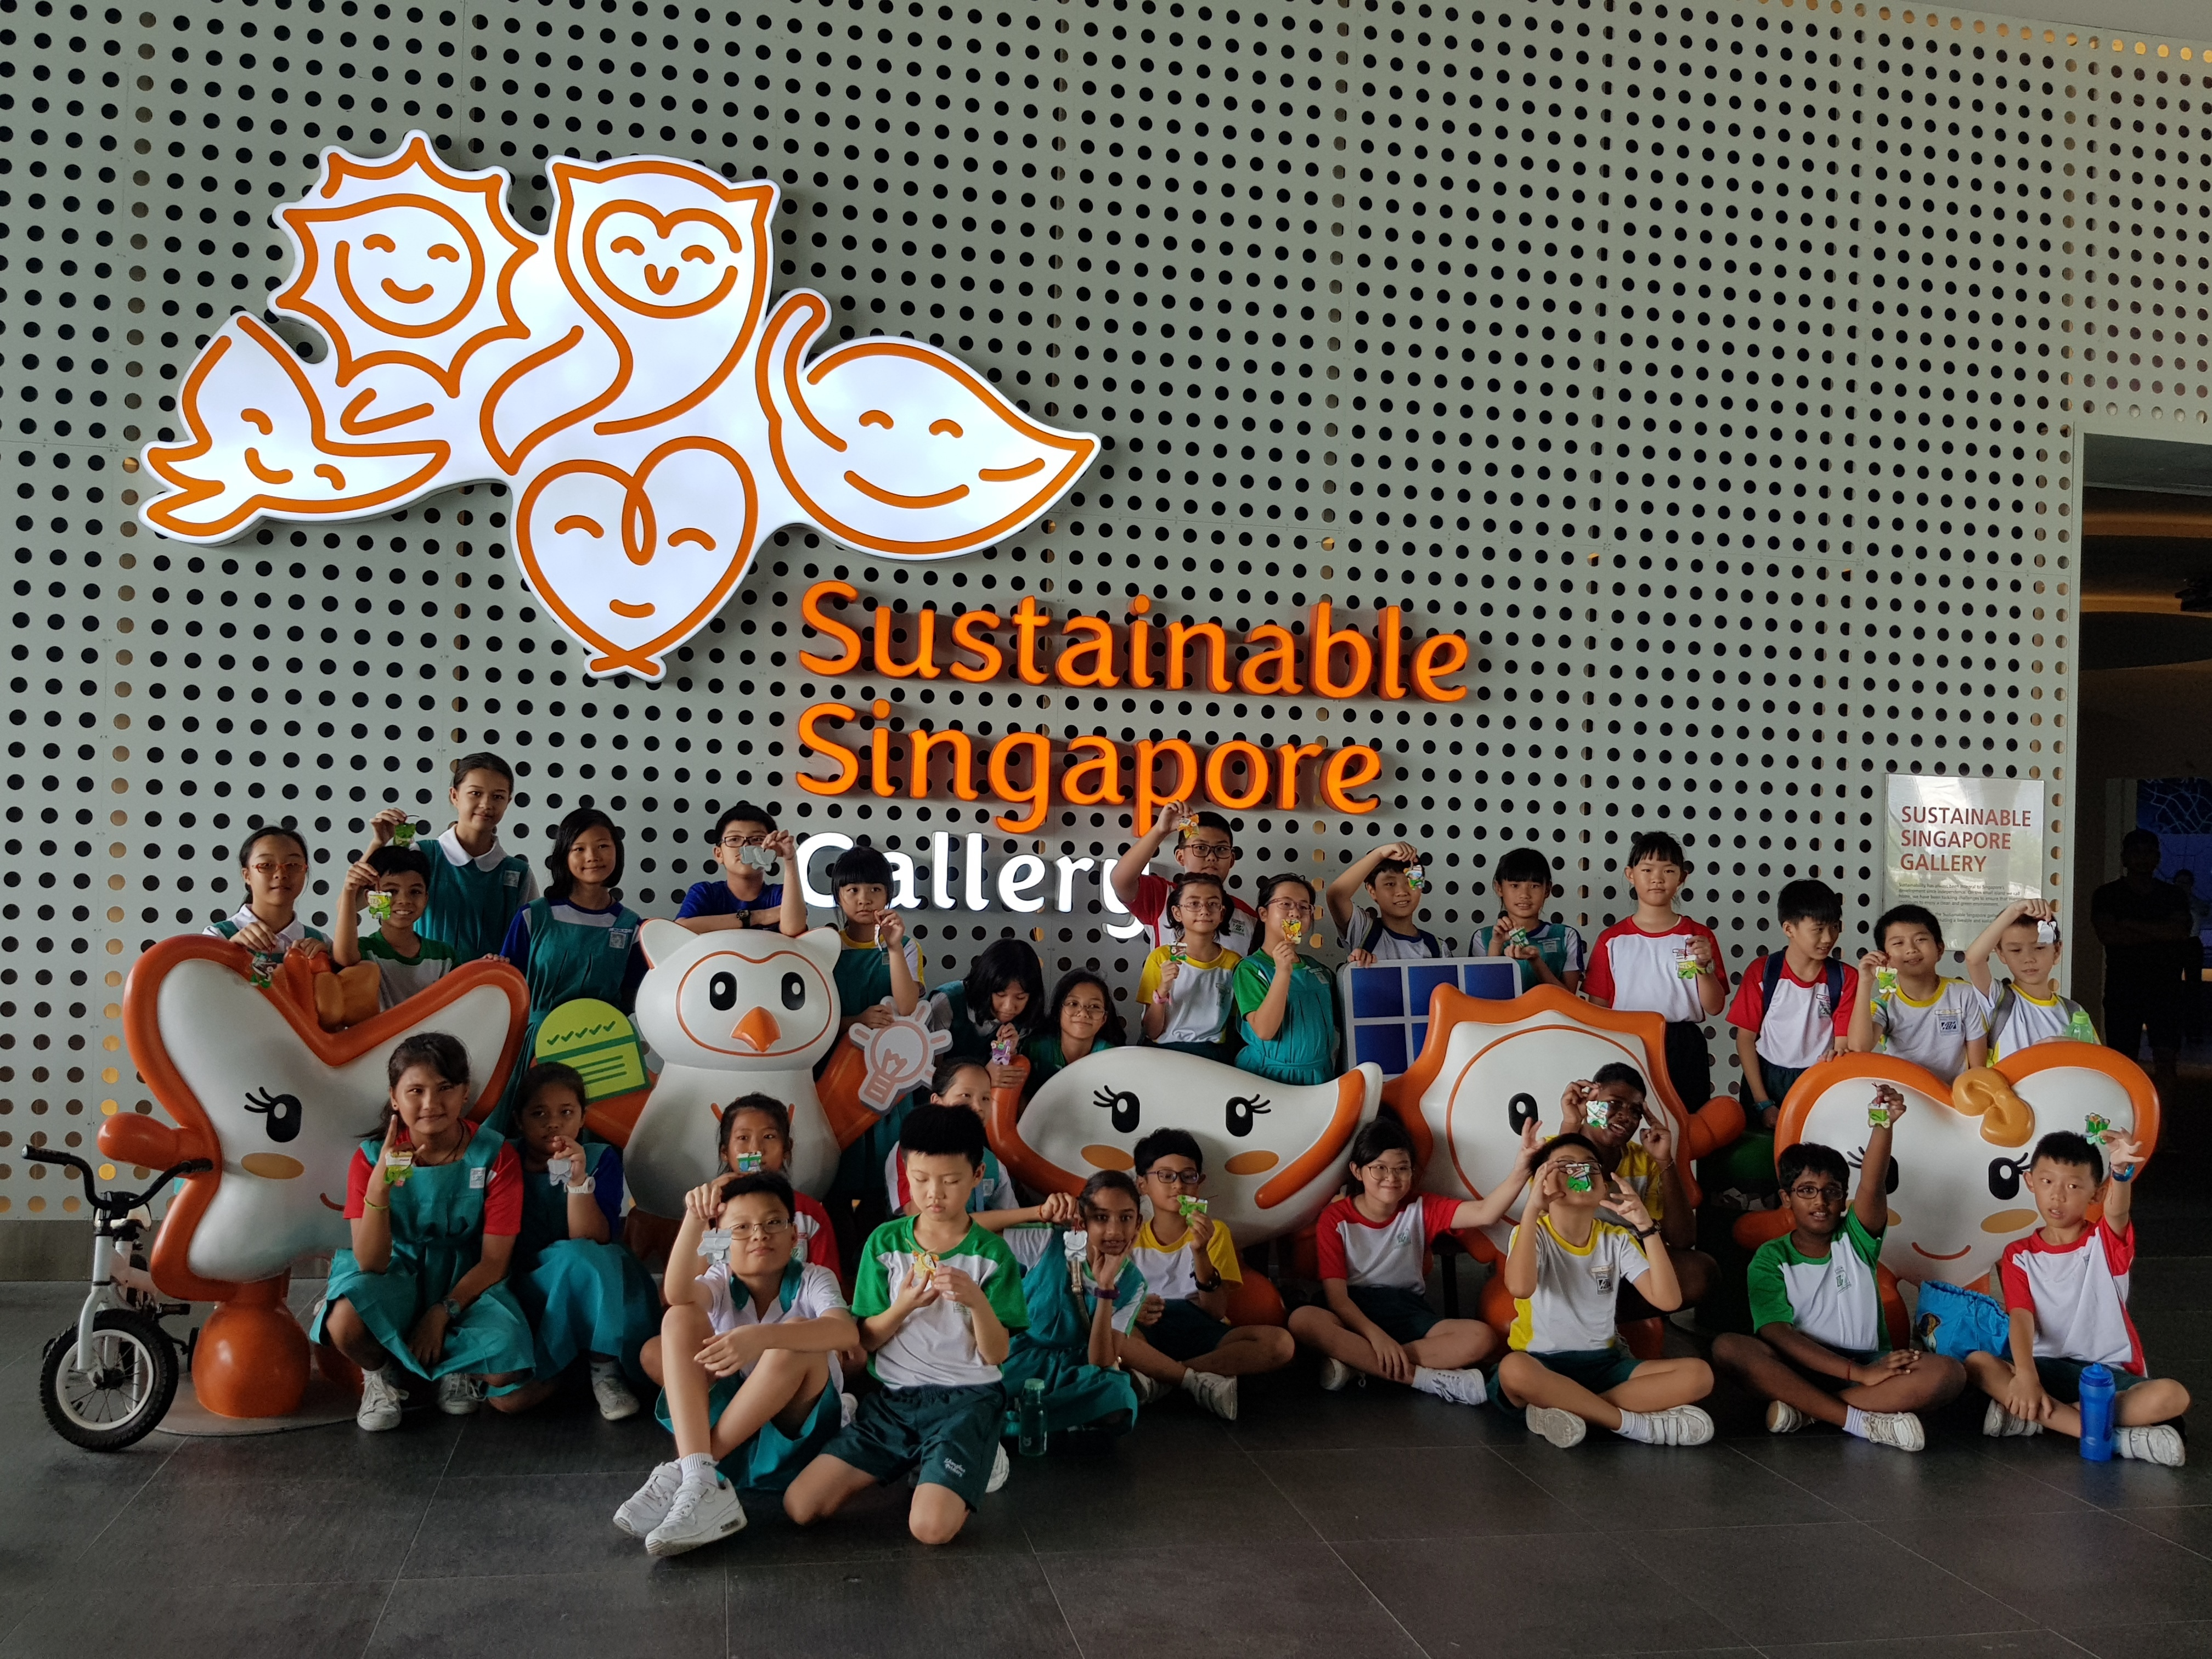 PEAK Club pupils and GEM monitors on LJ to Sustainable Singapore Gallery at Marina Barrage.jpg